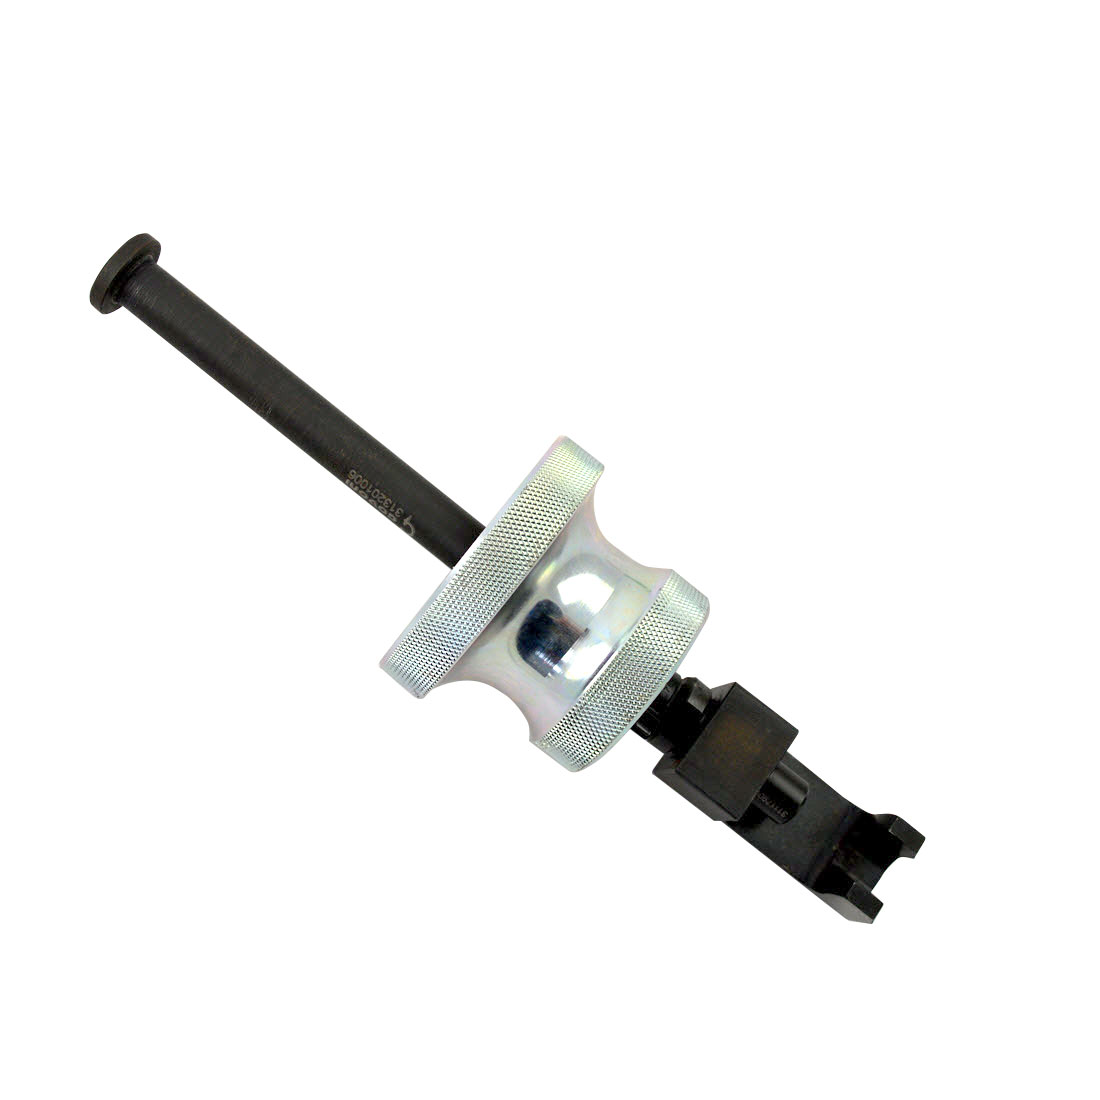 Mercedes delphi new type injector removal tool for sale for Mercedes benz tools